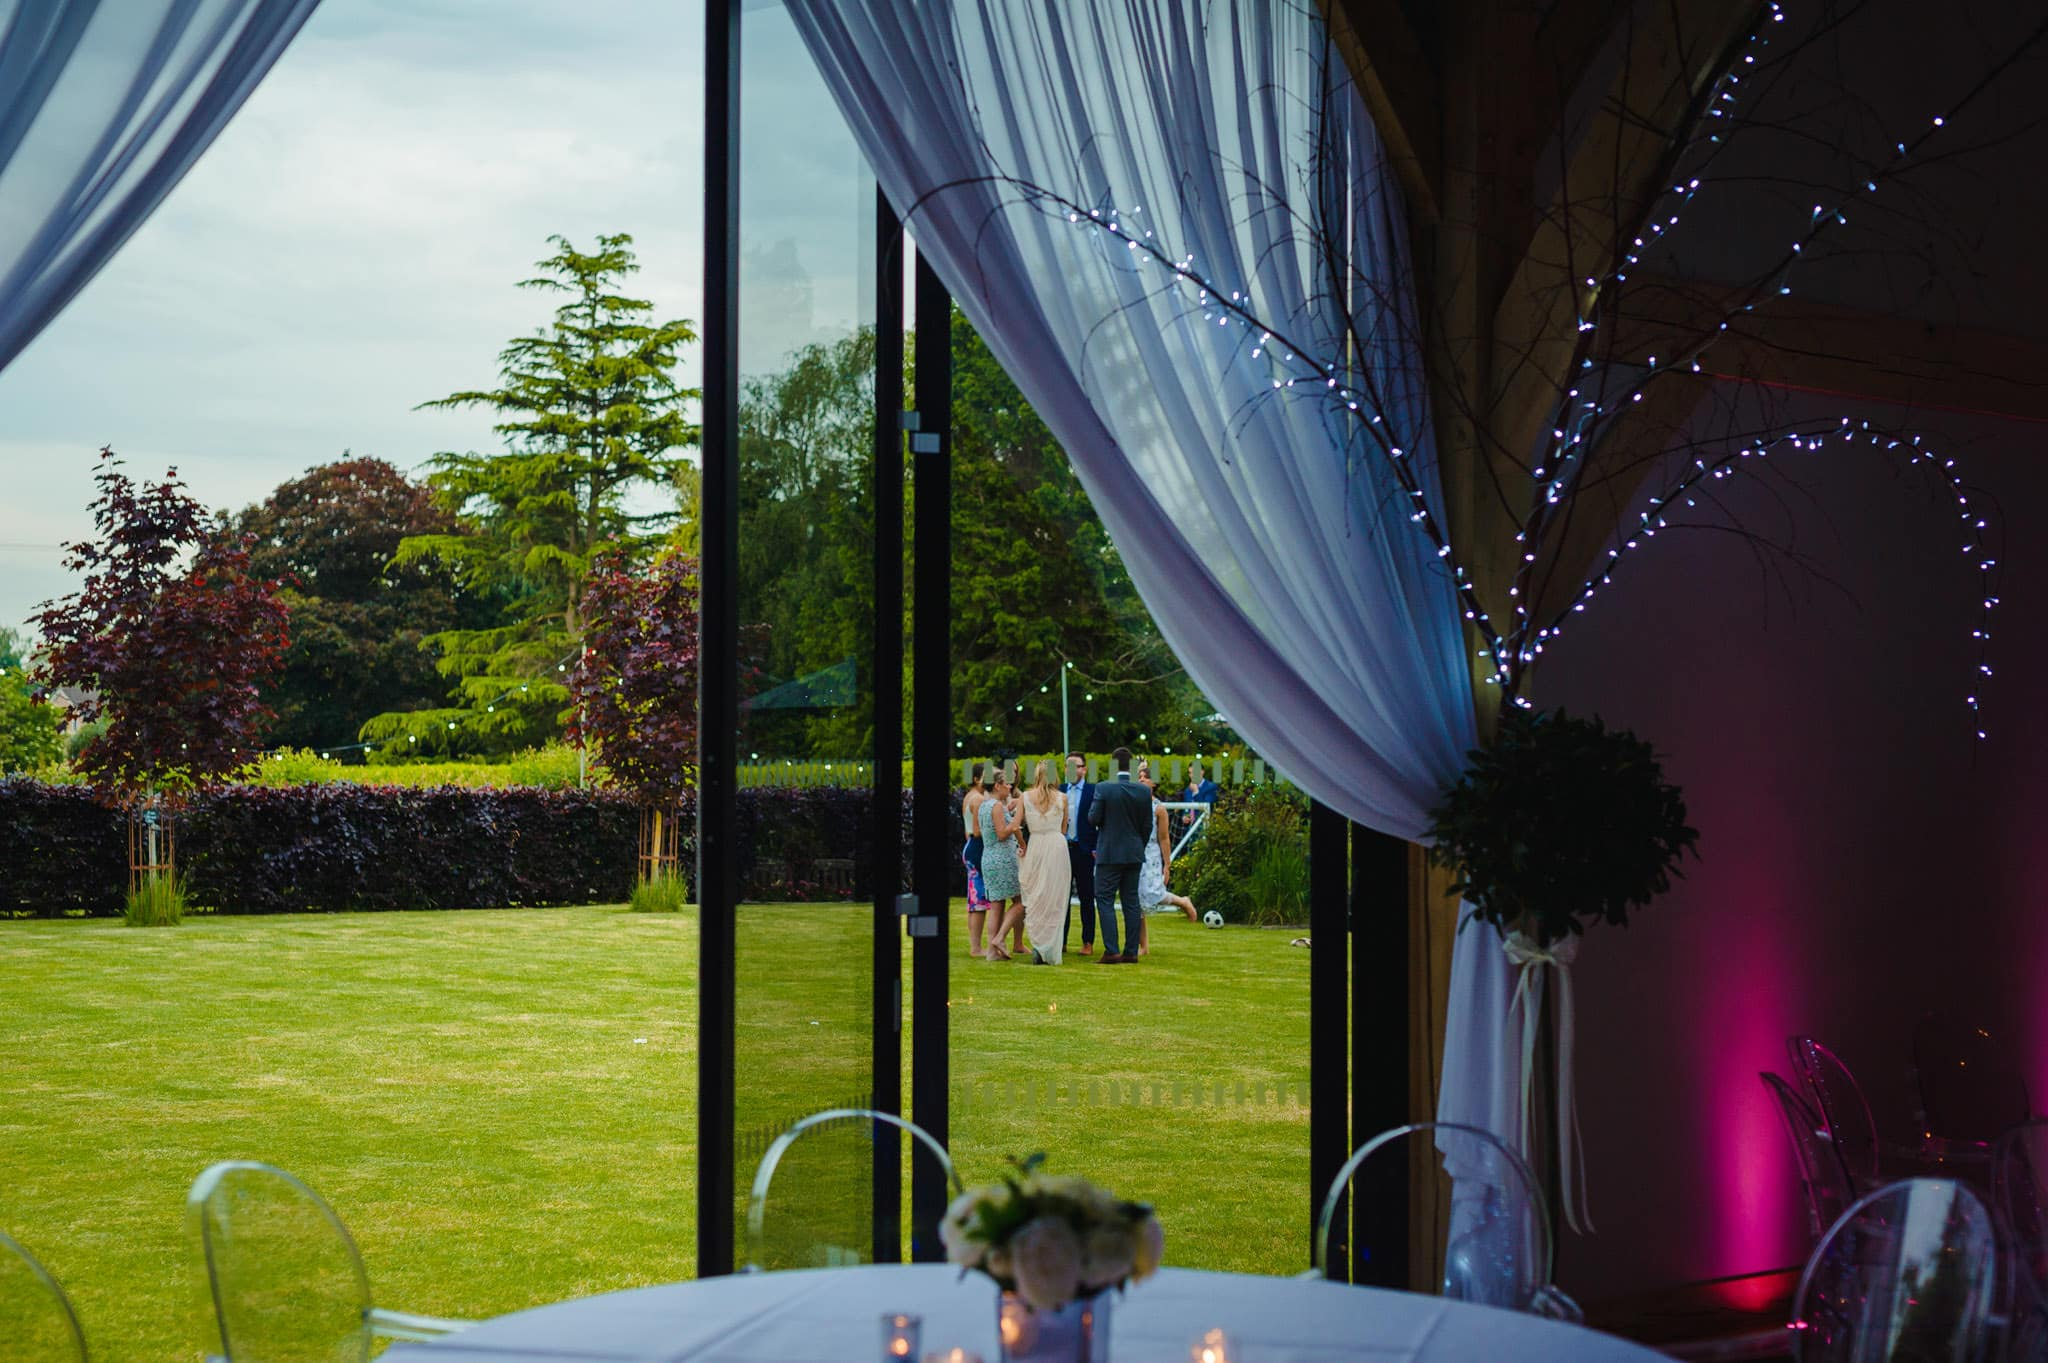 Wedding at Redhouse Barn in Stoke Prior, Worcestershire 185